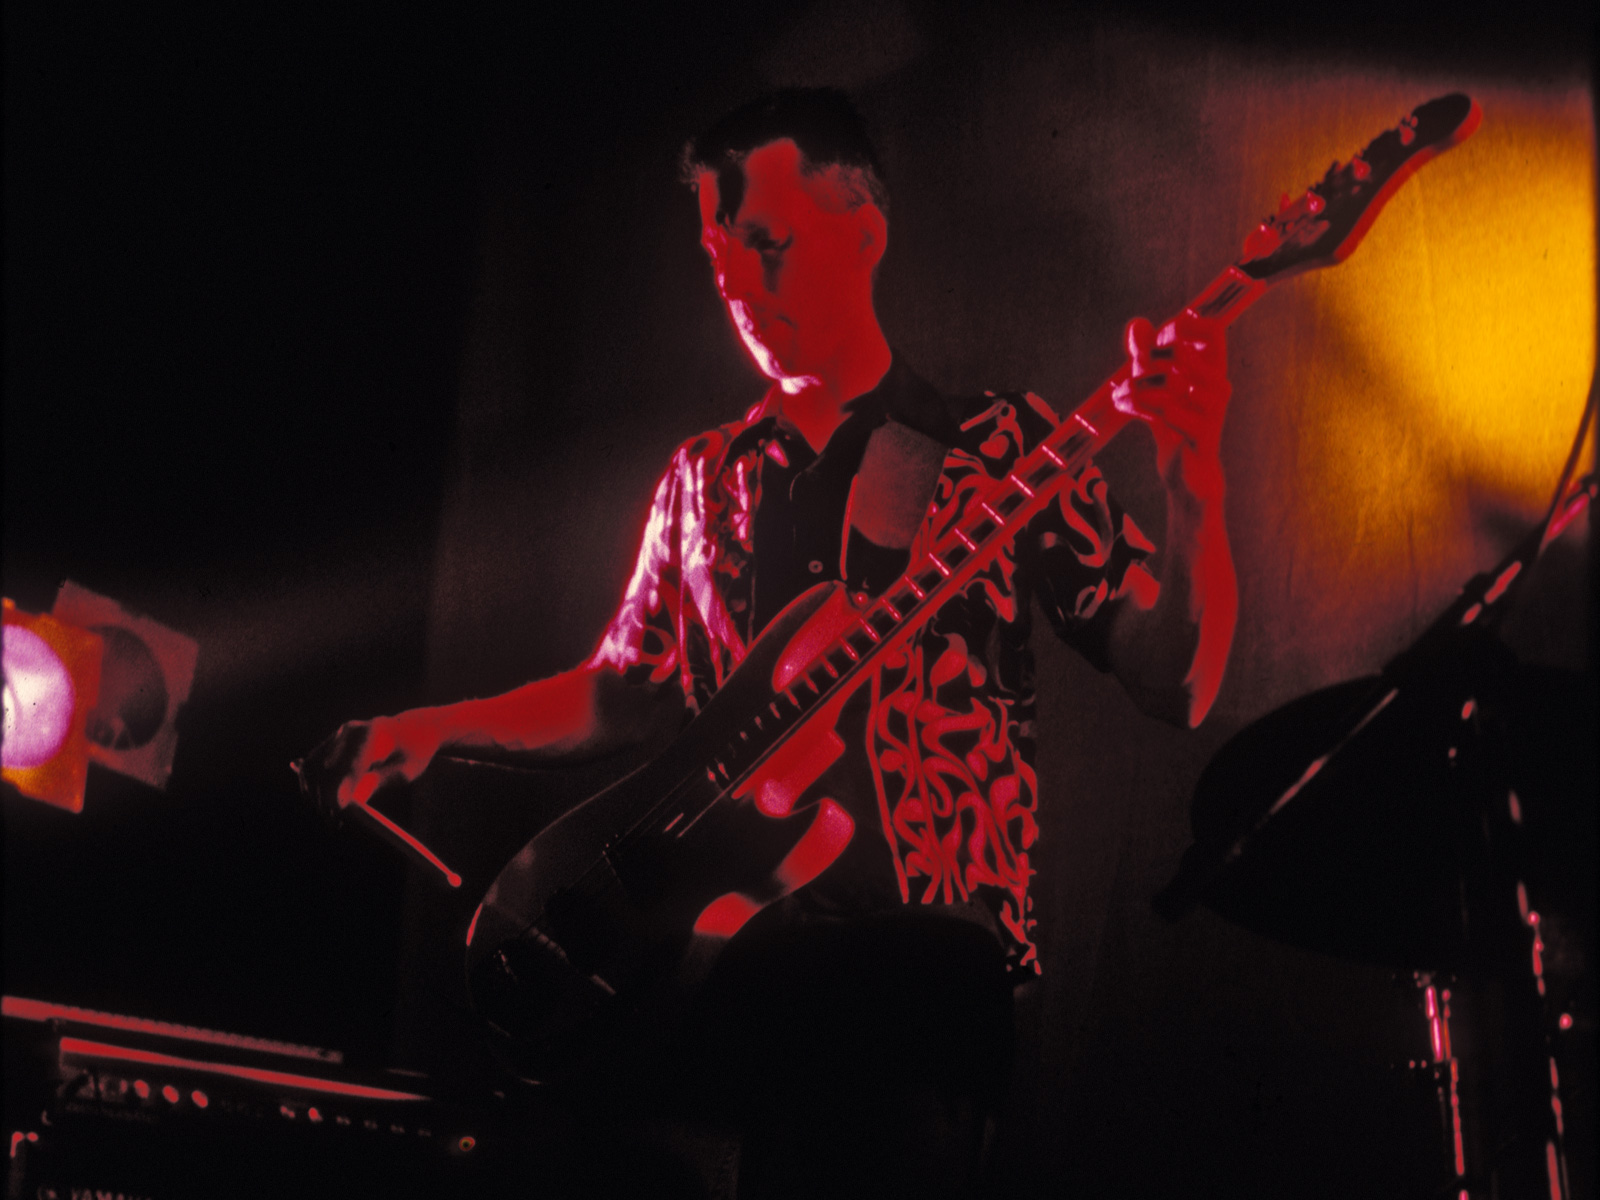 Bernie Heveron playing bass guitar with drum stick with Personal Effects.